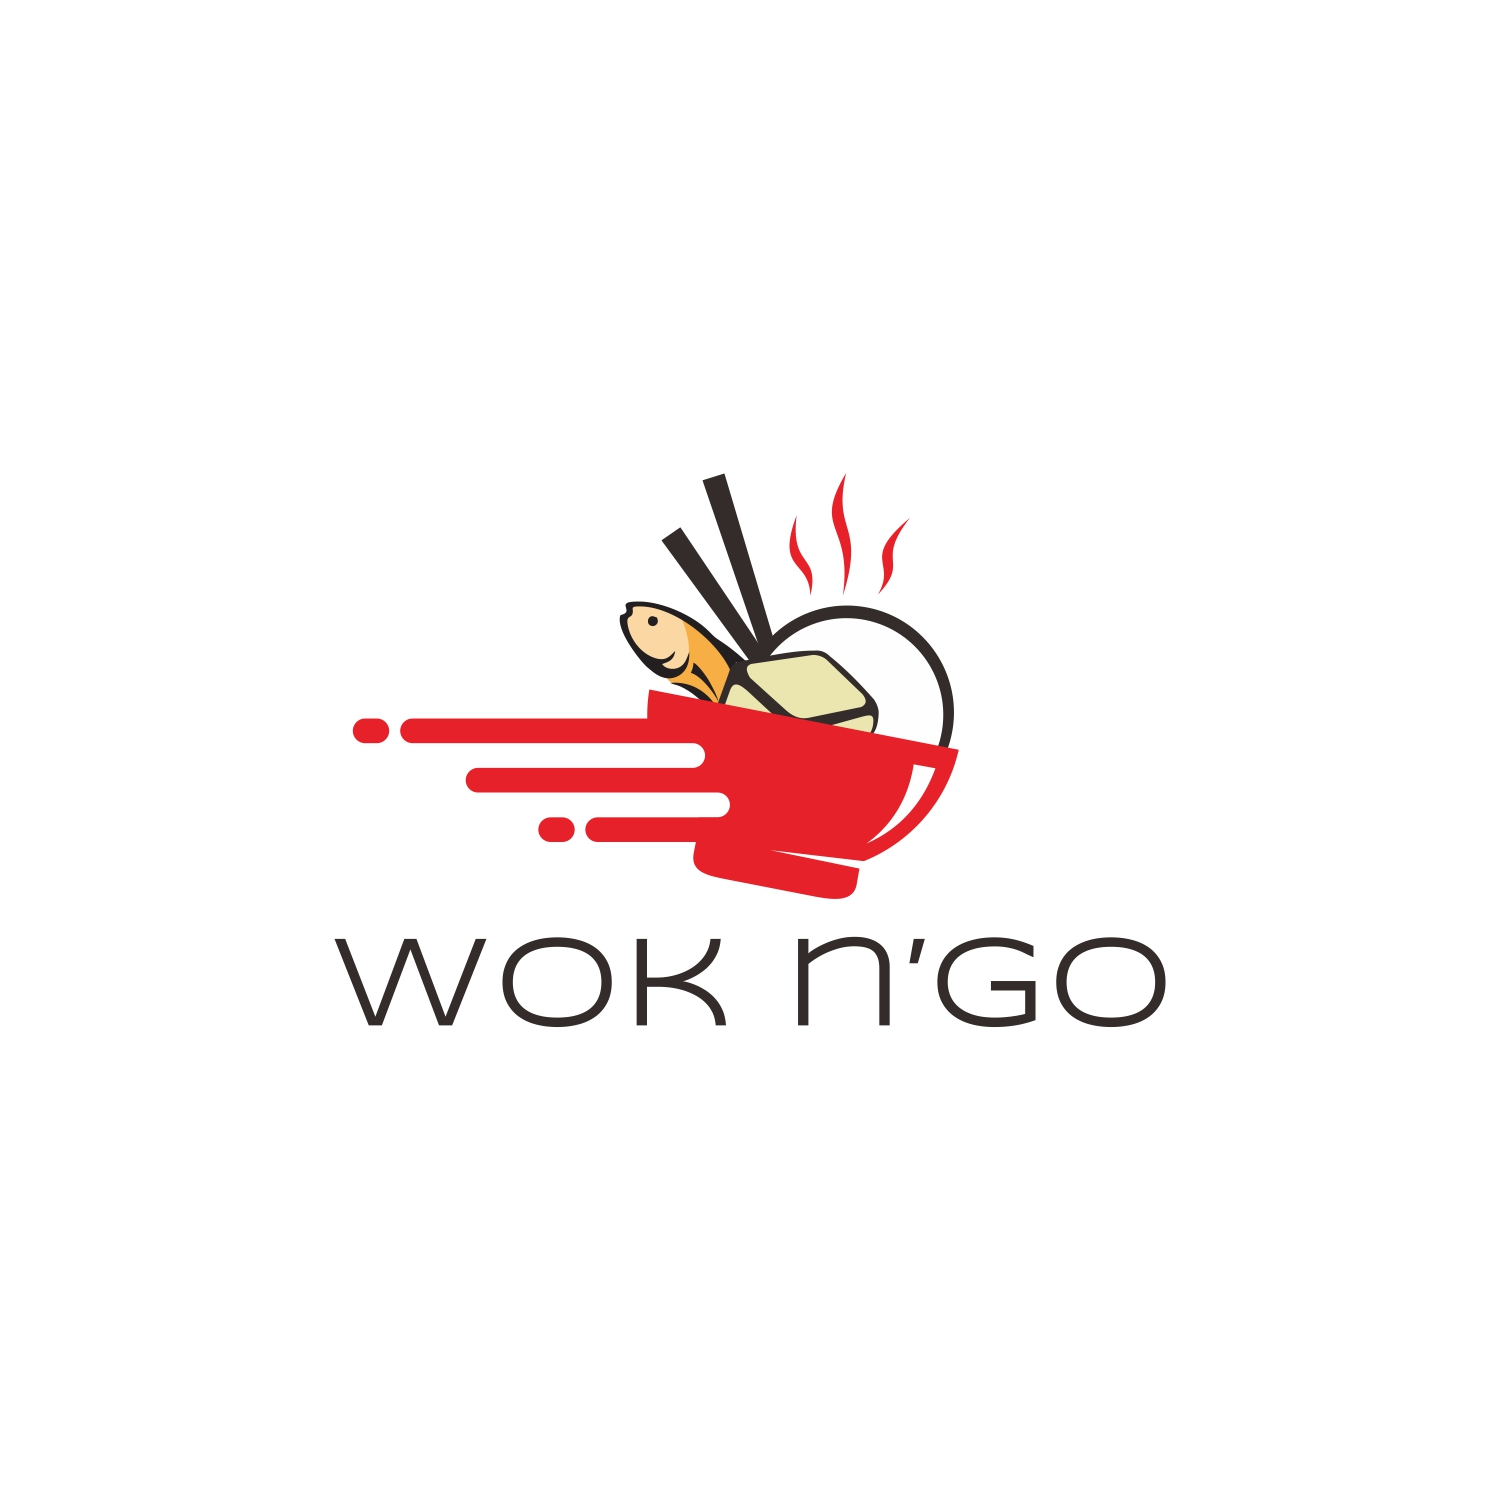 Modern Playful Fast Food Restaurant Logo Design For Wok N Go By Six Eleven Design Design 16433412